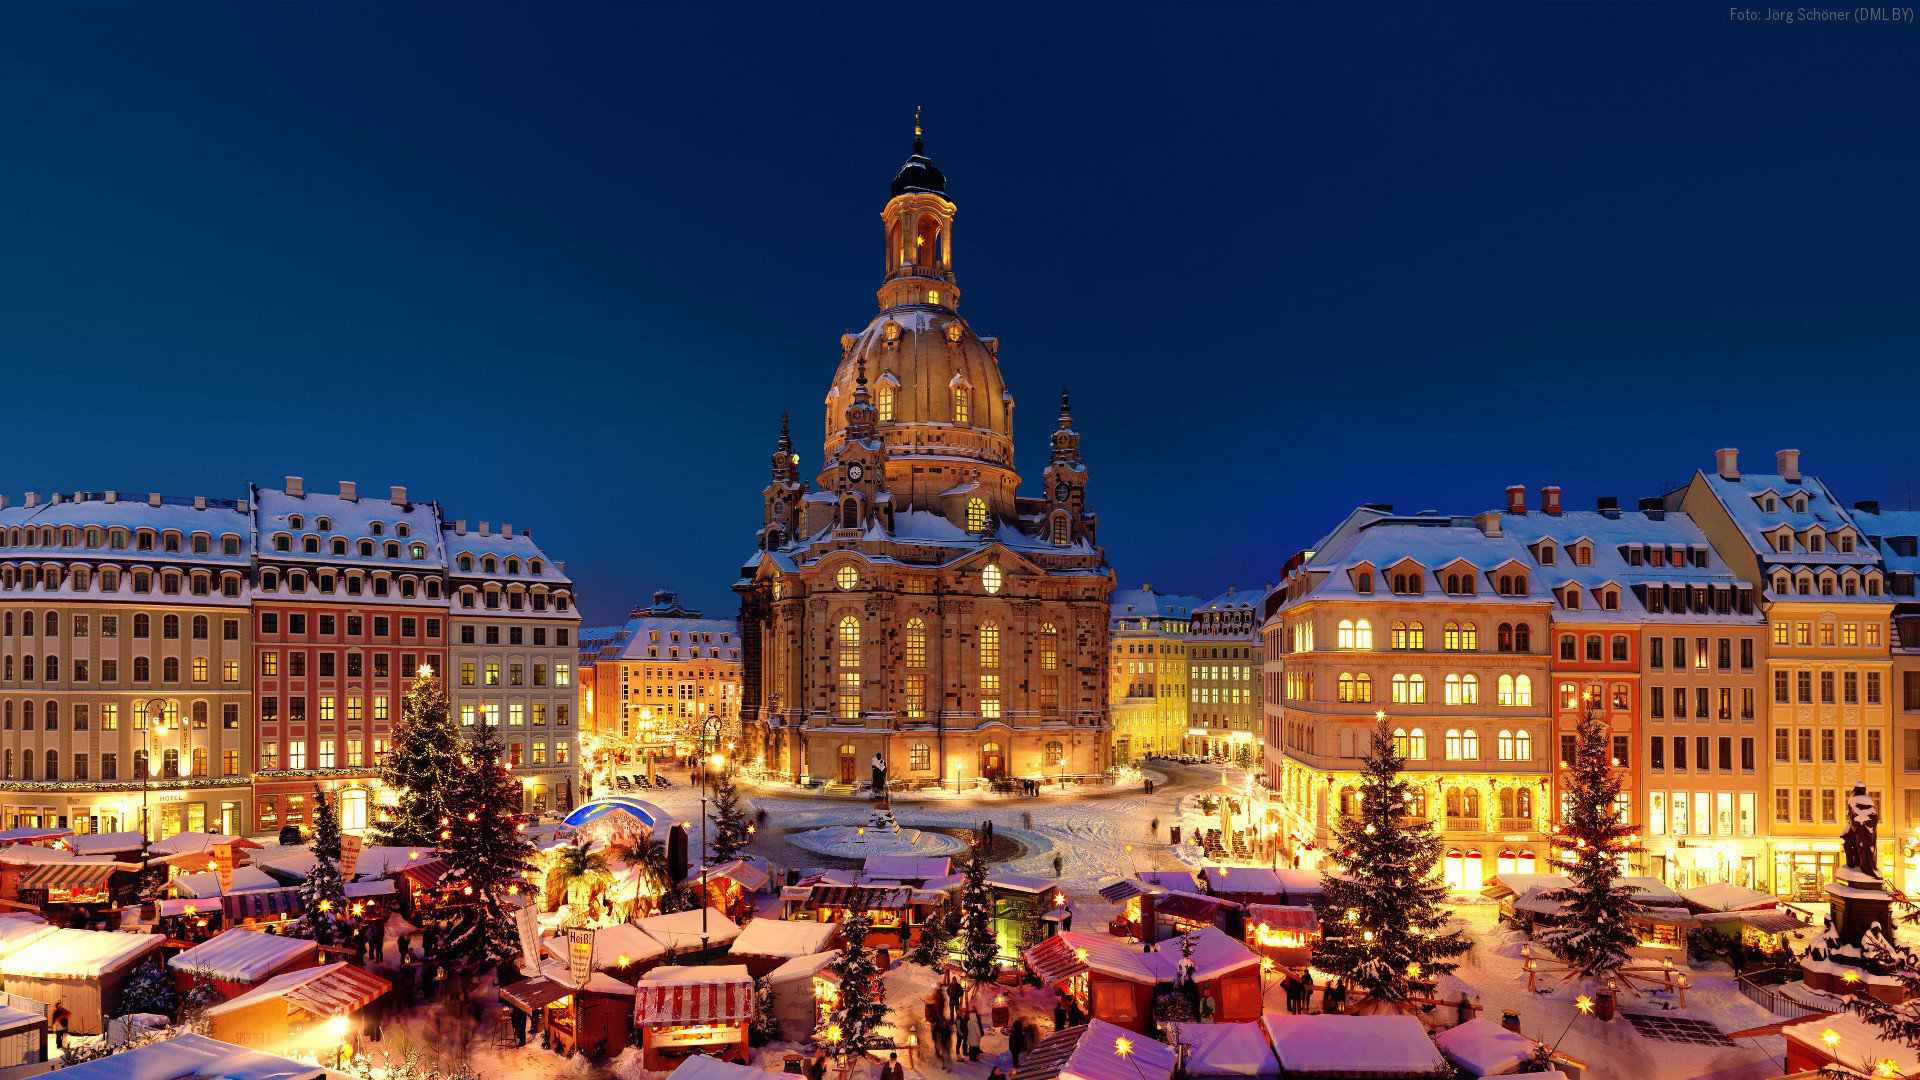 Weihnachten Bilder Dresden Event Marketing